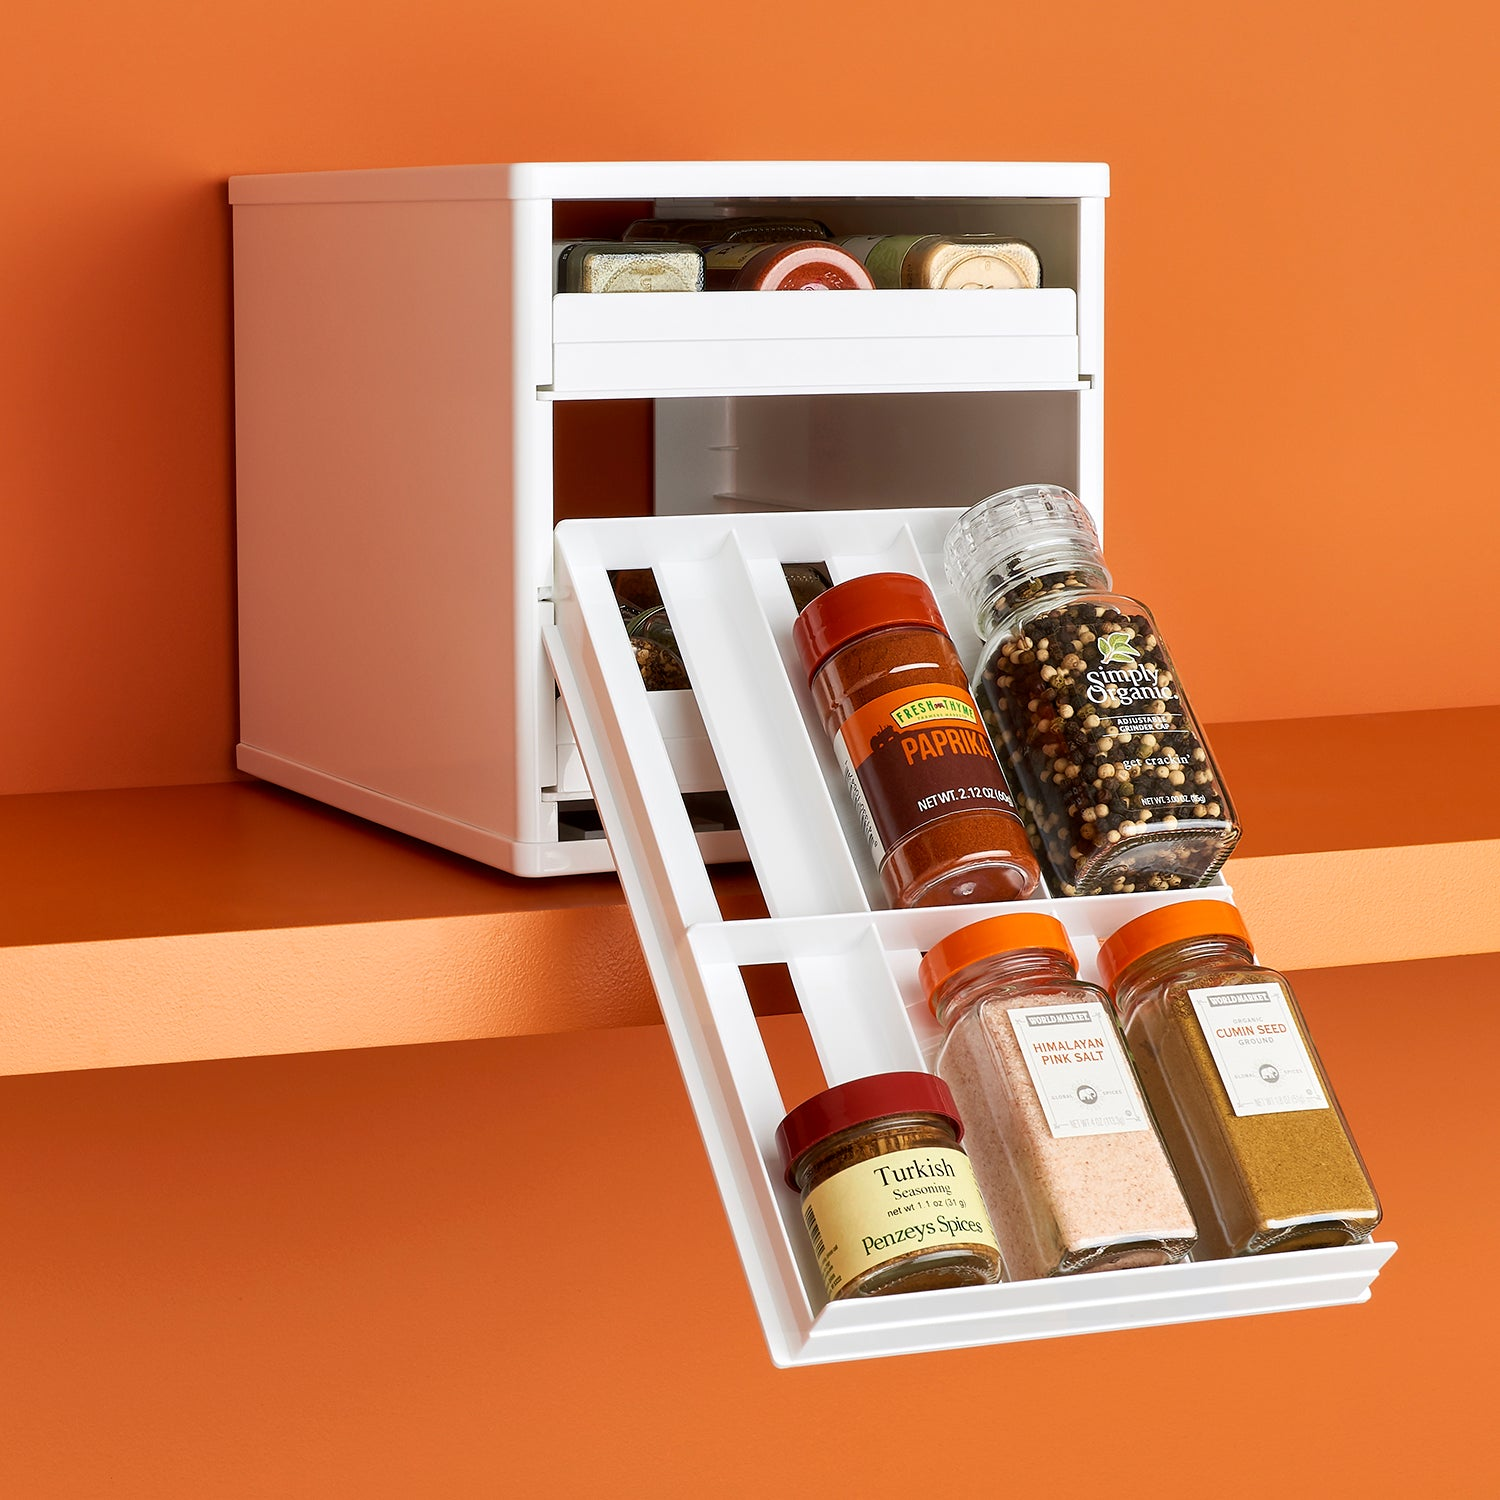 SpiceStack Original 18-Bottle Cabinet Spice Rack